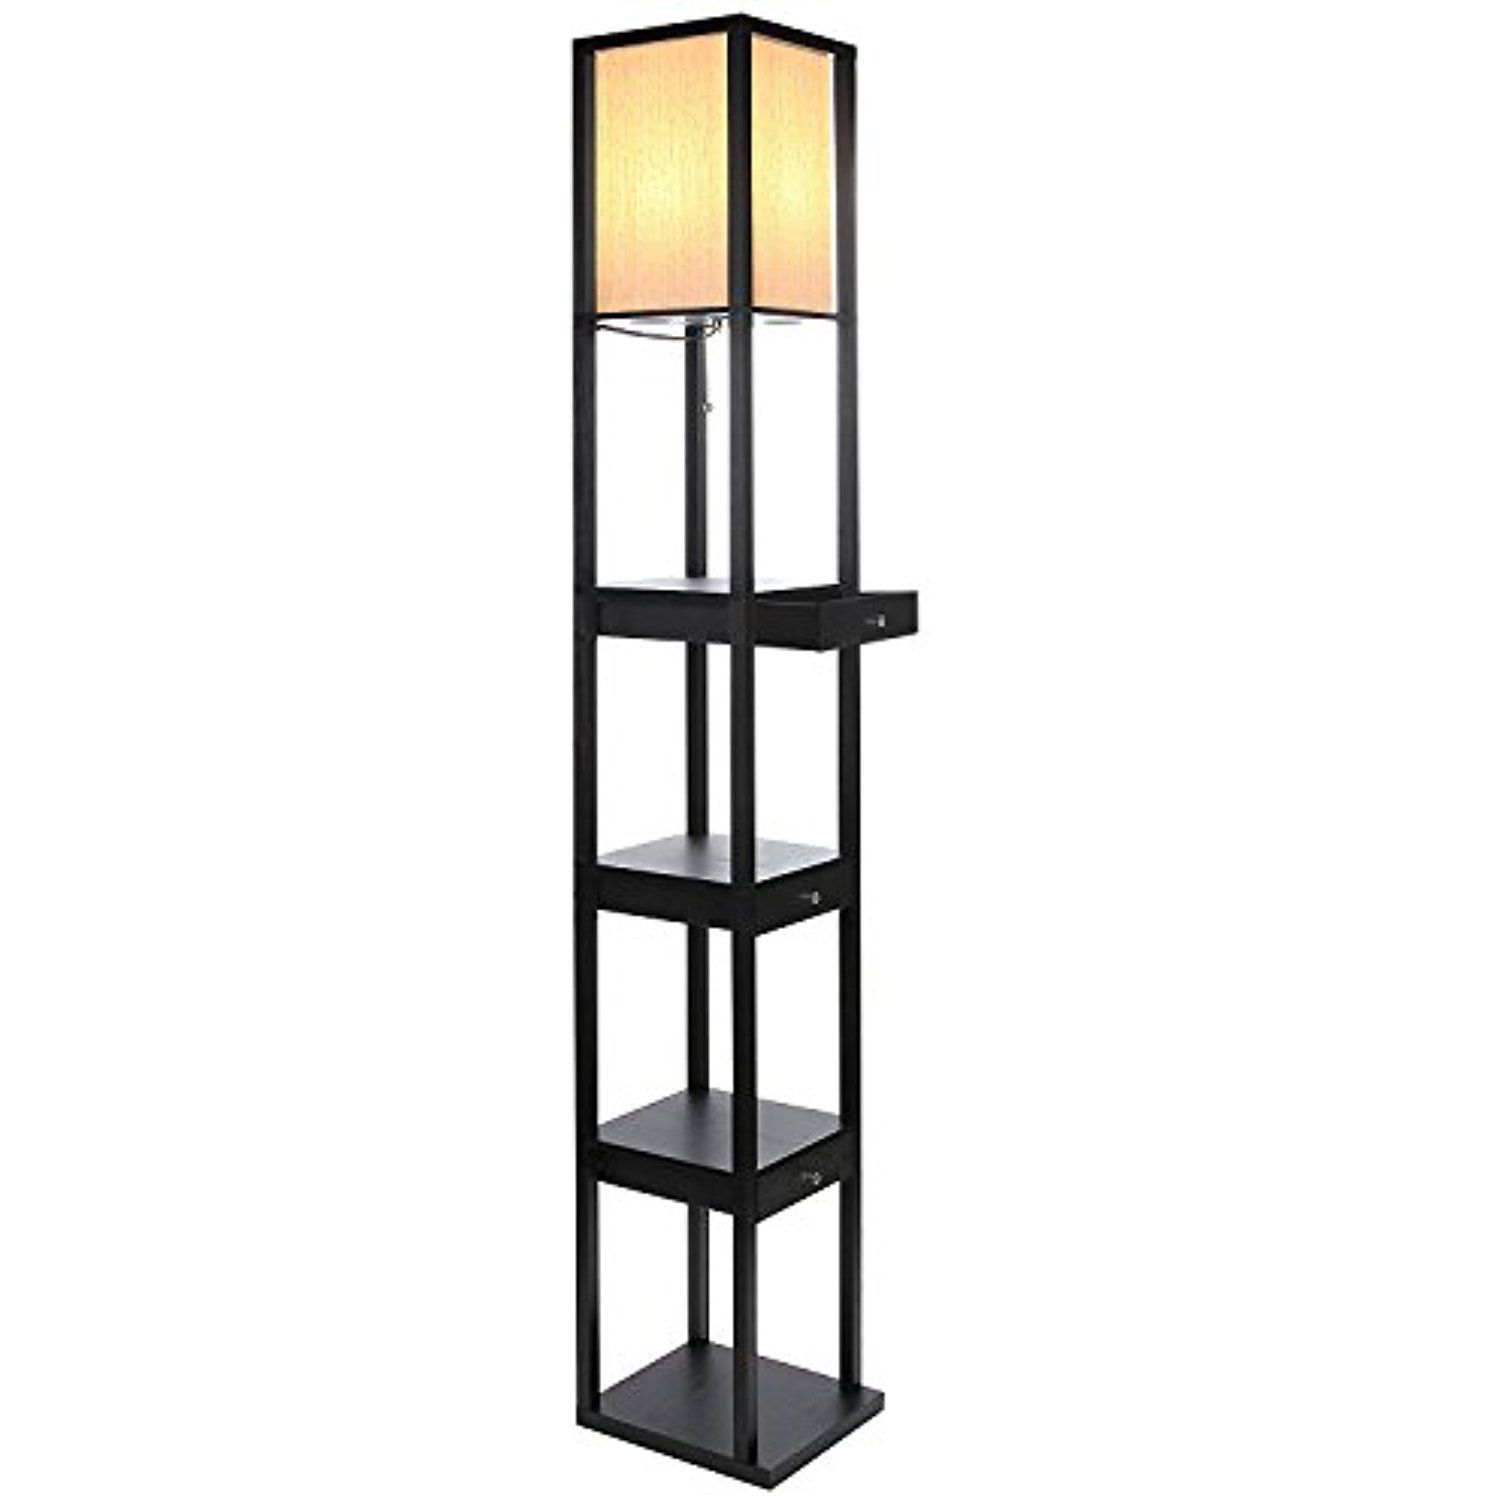 Brightech Maxwell LED Drawer Edition Shelf Floor Lamp â